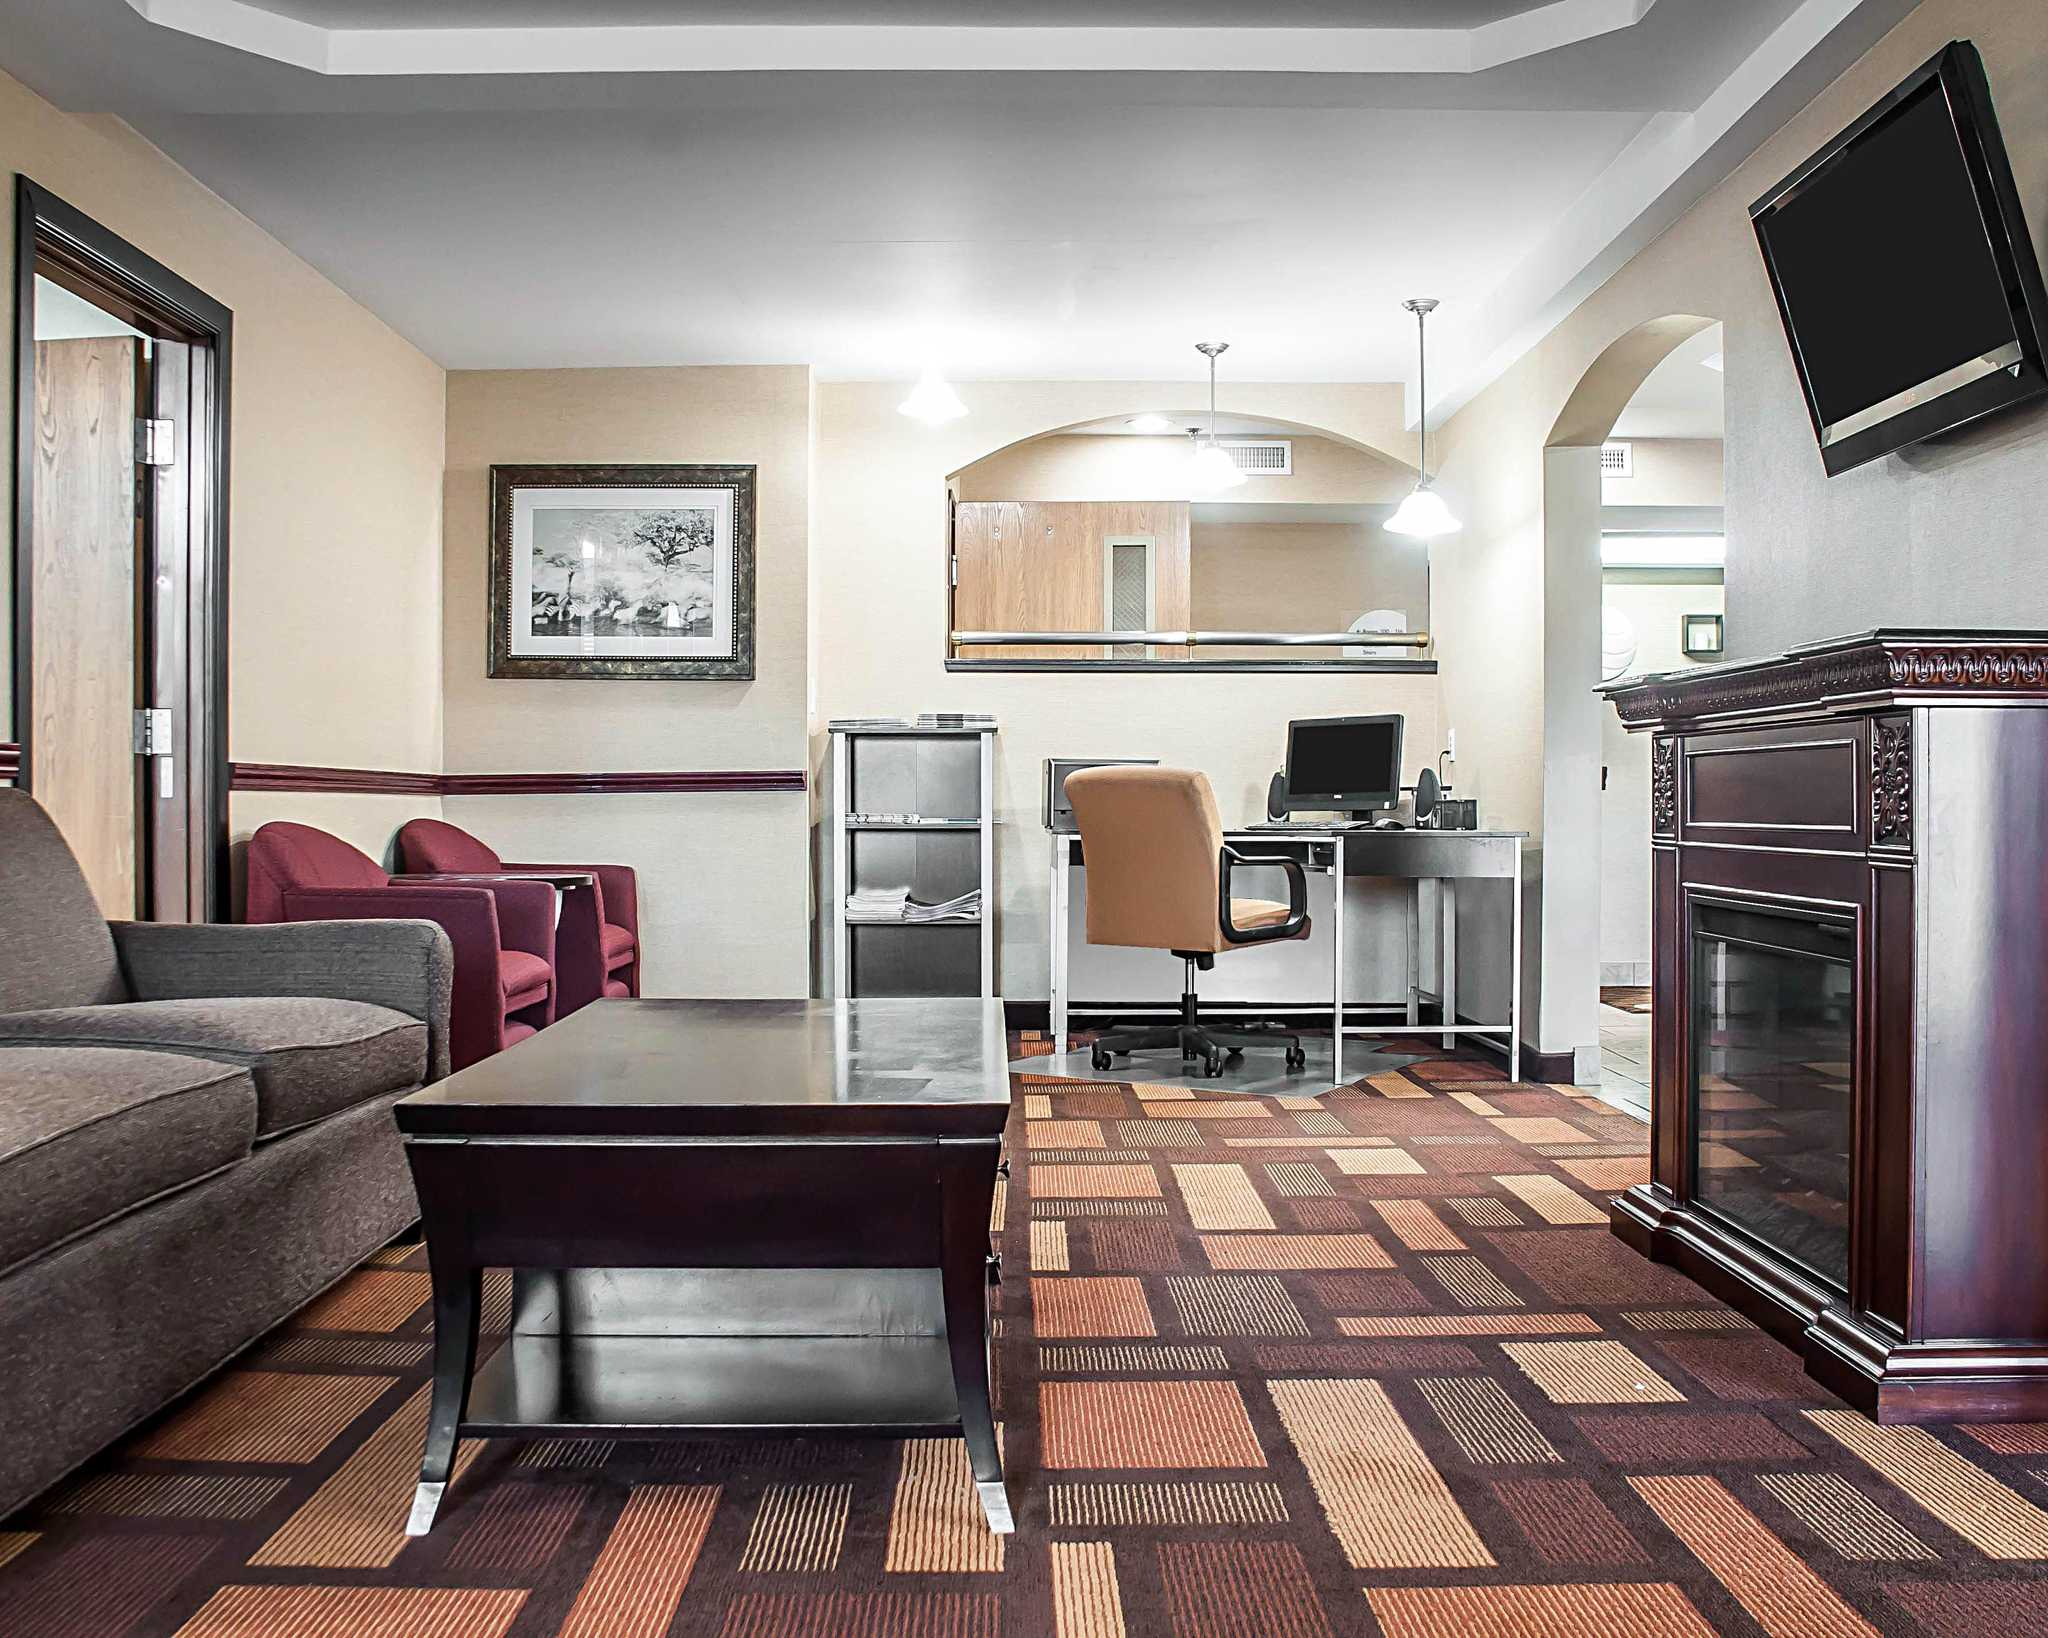 Hotels In Dunkirk Ny Area